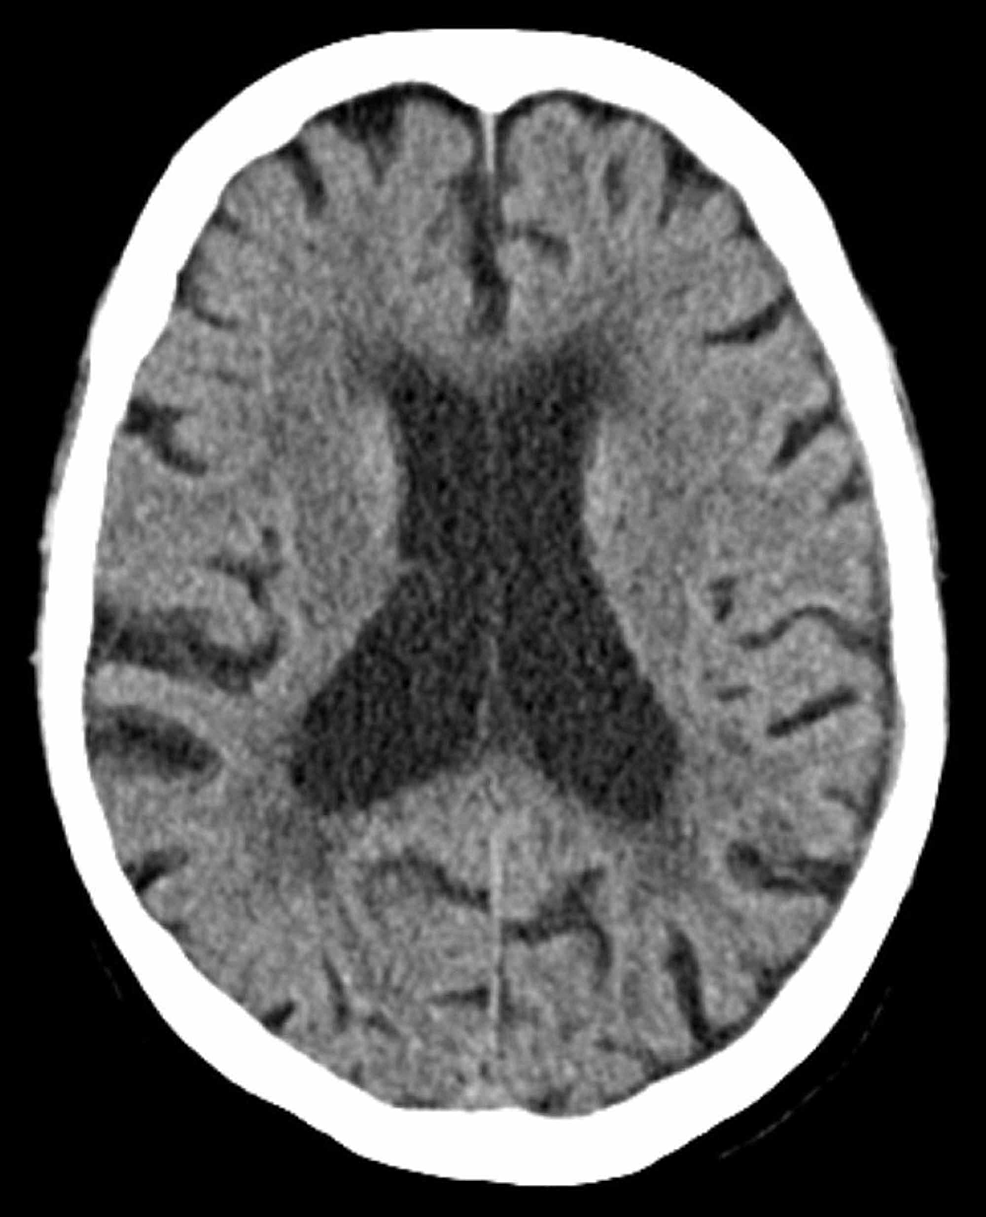 Ten-week-outpatient-follow-up-CT-examination-demonstrating-persistent-thin-subdural-collection-with-minimal-mass-effect-and-no-significant-midline-shift.